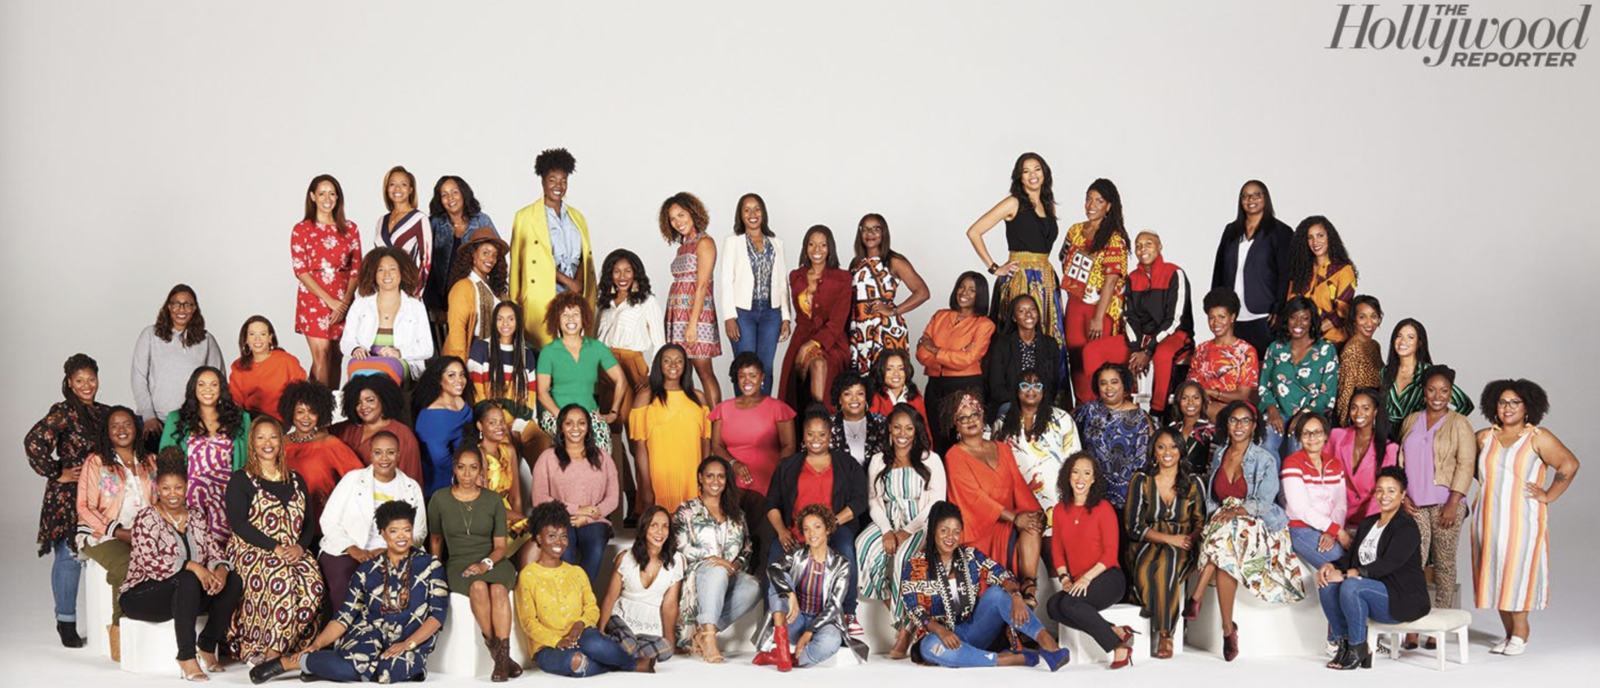 The members Black Women Who Brunch, a networking group co-founded by Lena Waithe, came together at the Hollywood Reporter to discuss their mission and state their presence in the industry. It's only fitting that this record-breaking honor would be bestowed on these fabulous ladies.